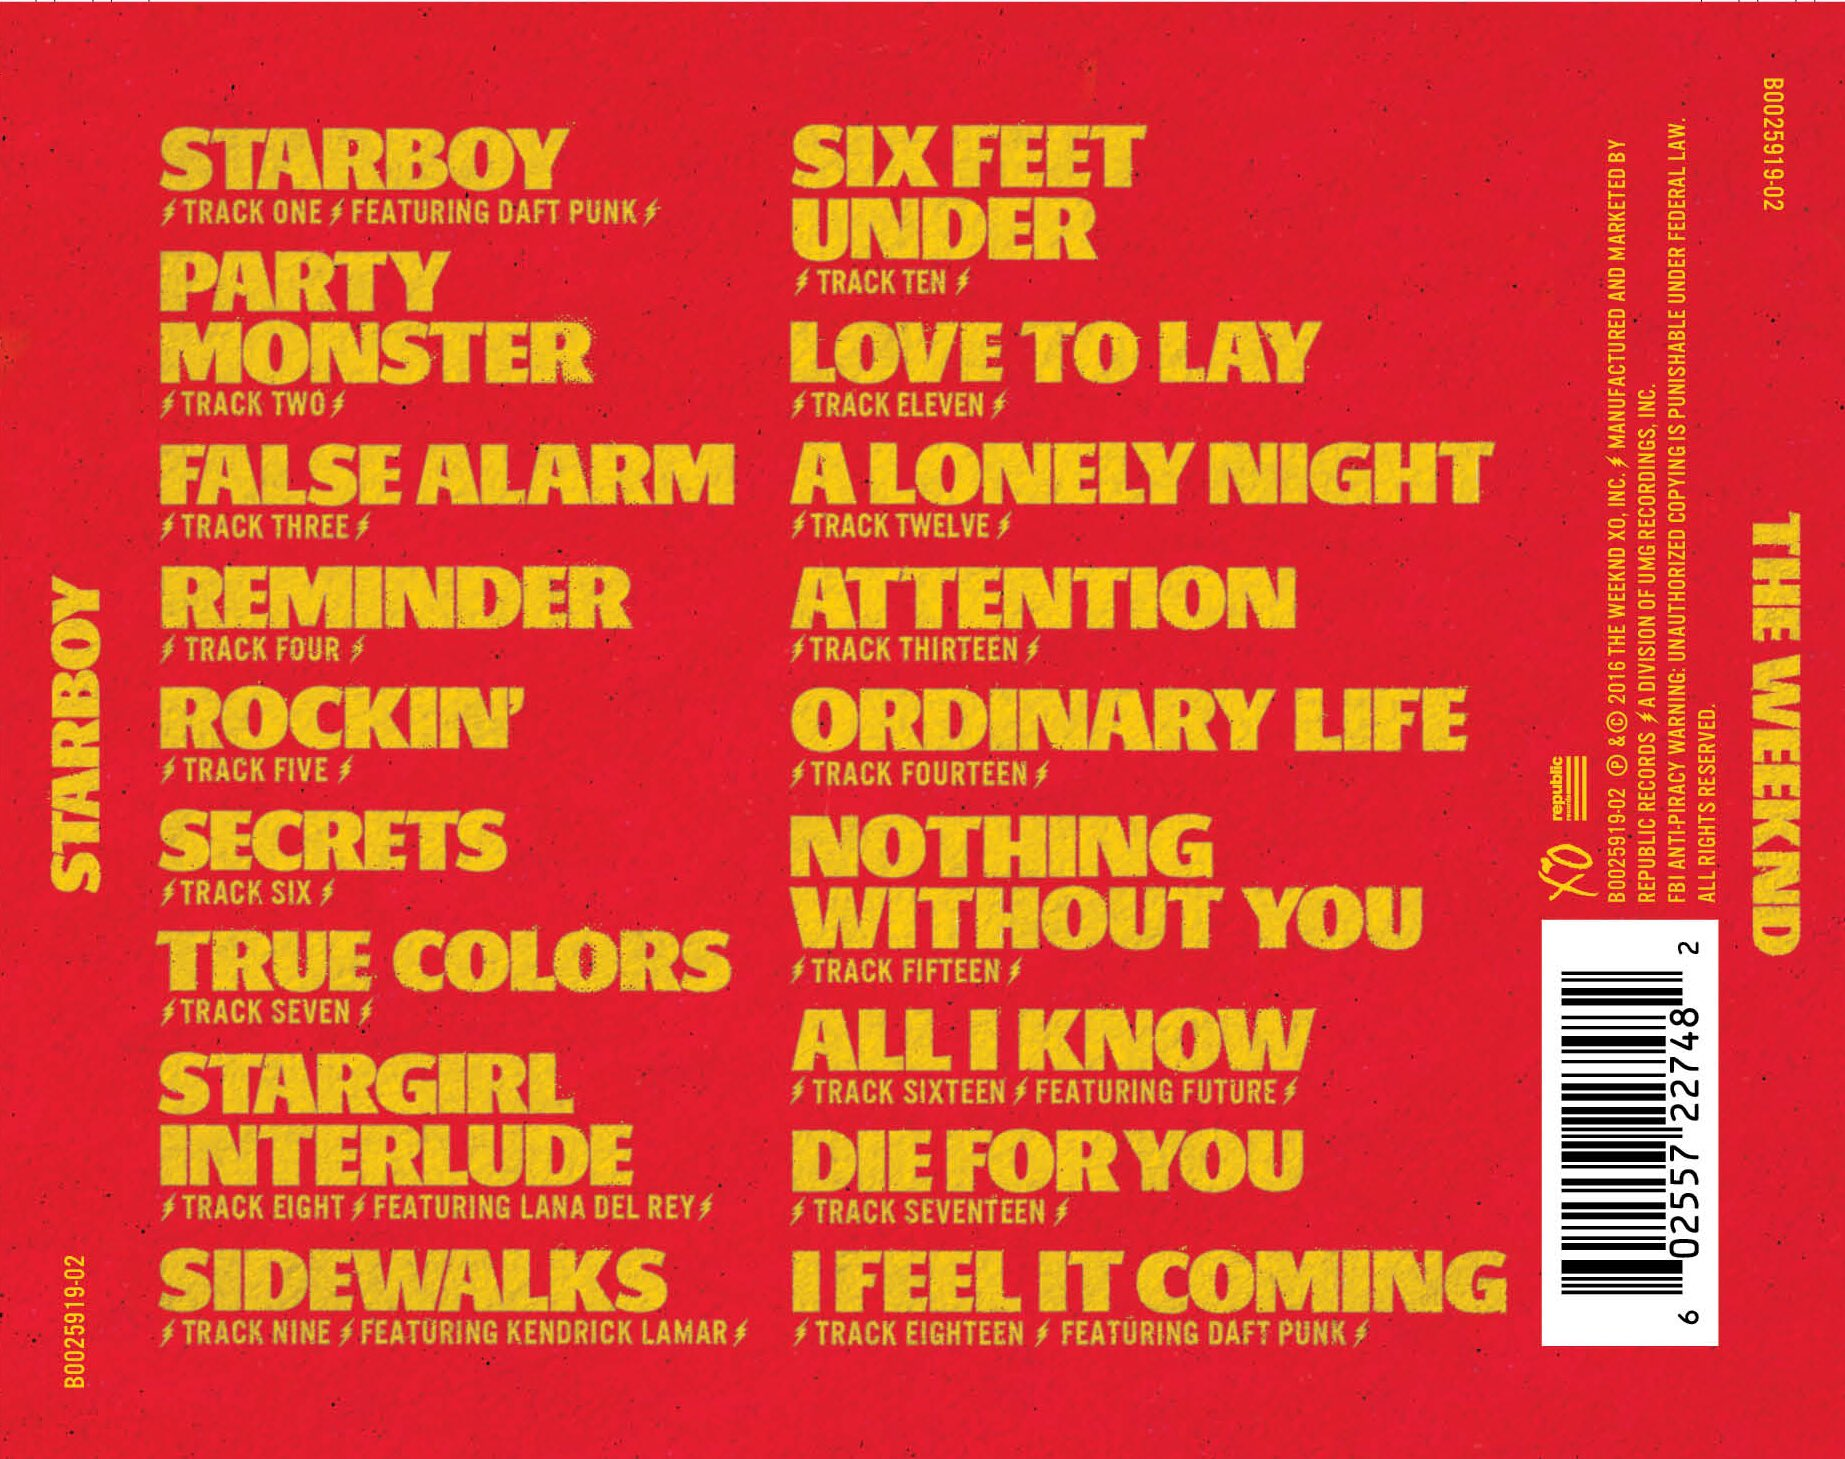 The Weeknd Reveals Official Tracklist For Starboy